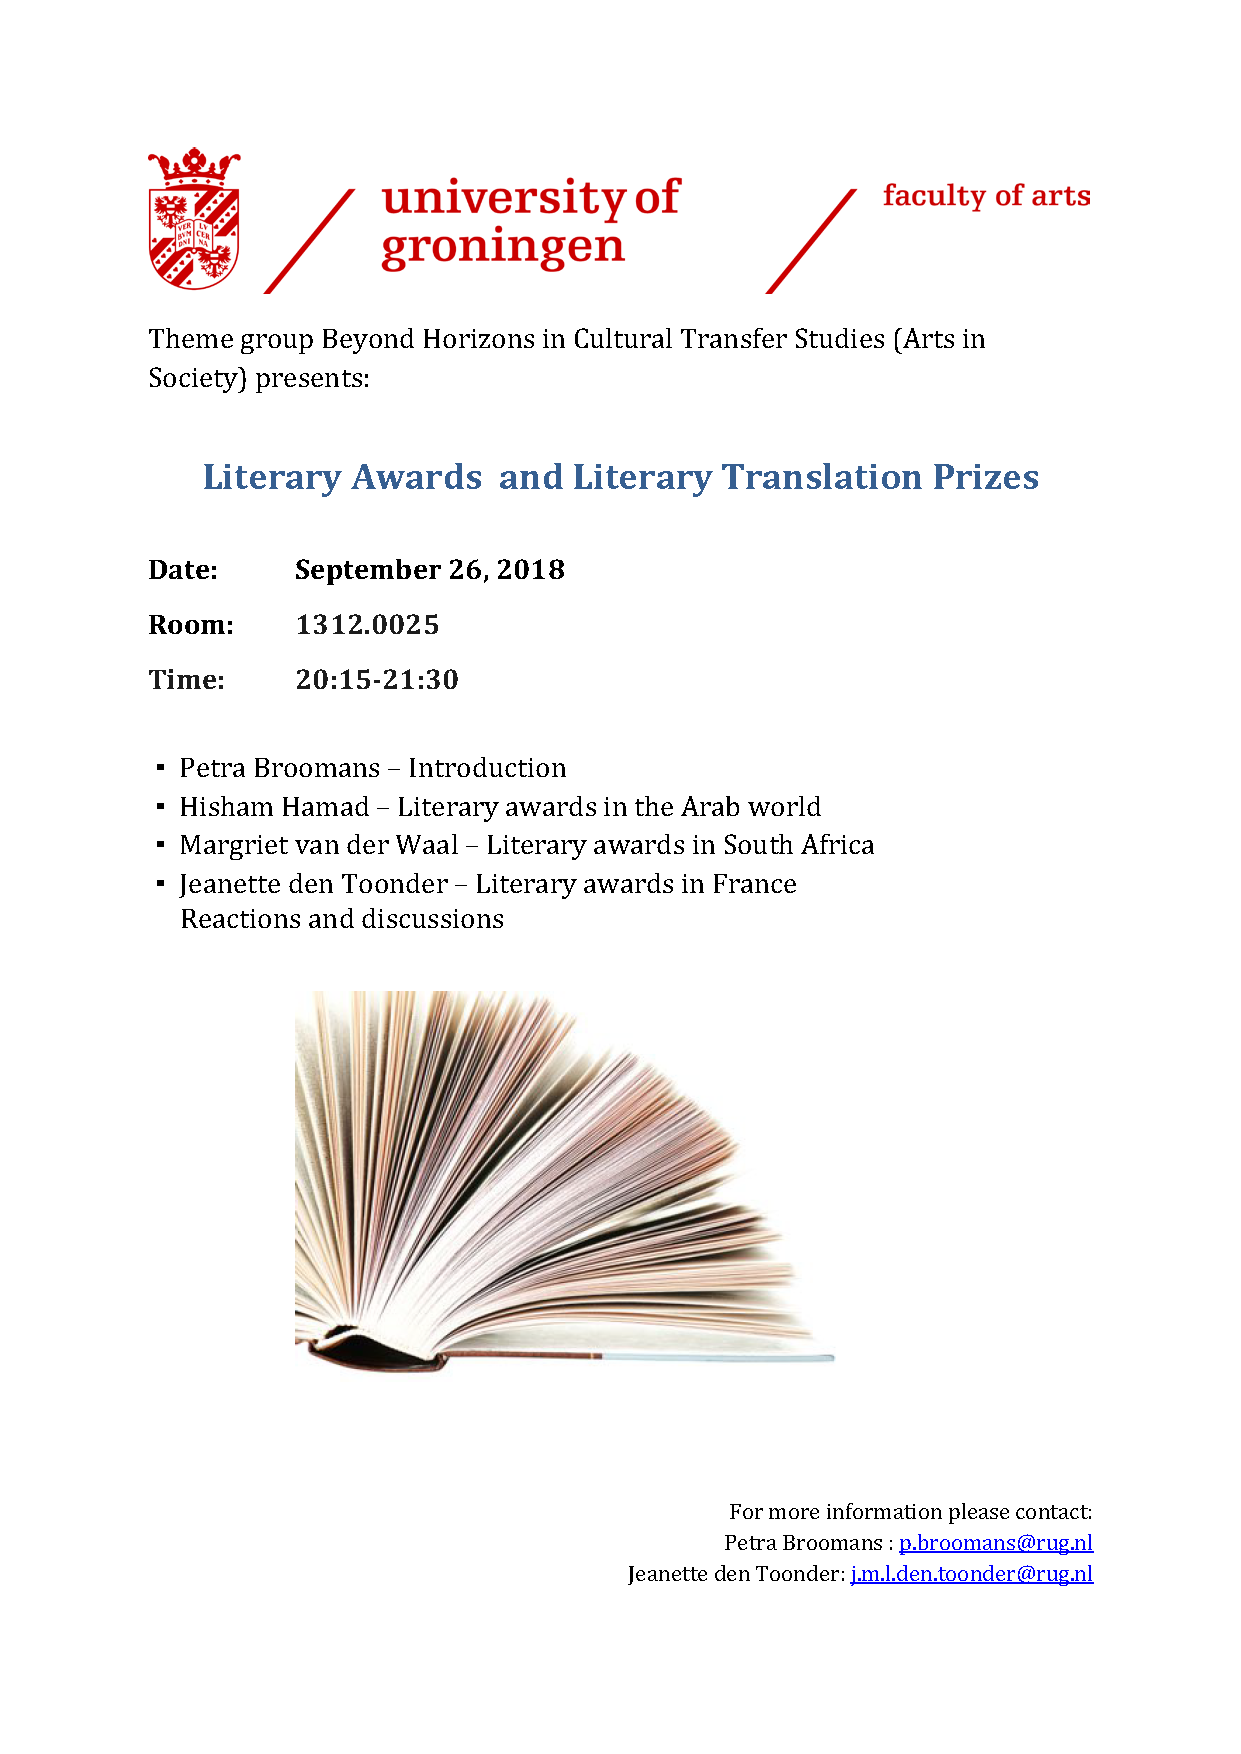 French literary prizes 2018